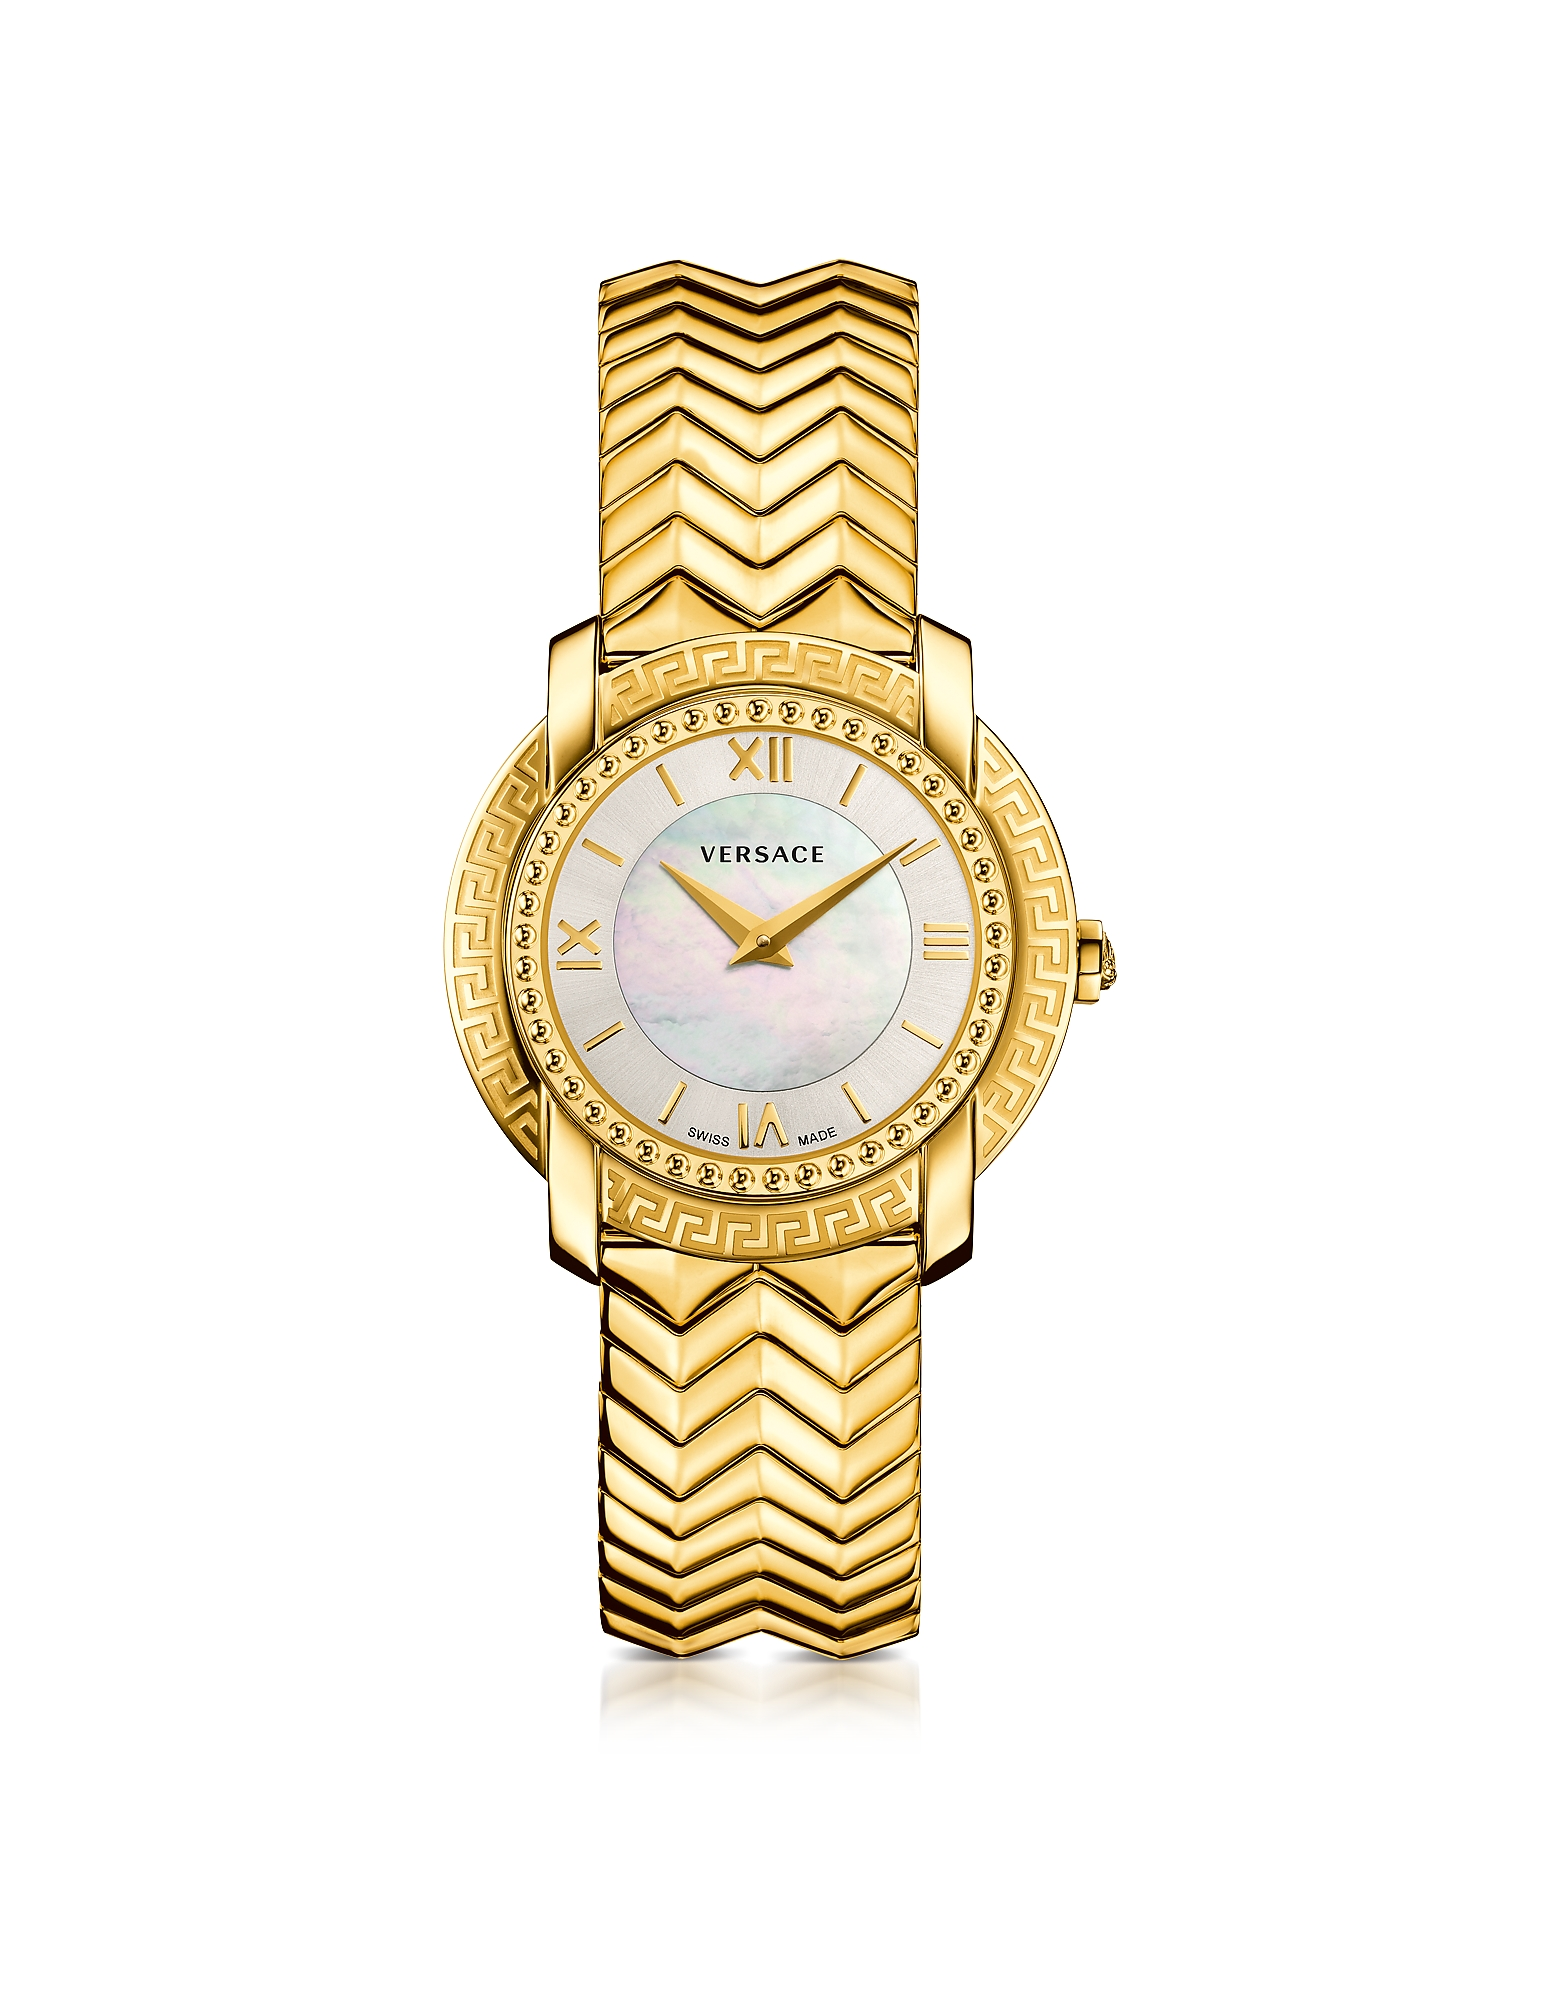 Versace Women's Watches, DV25 Round Gold Women's Watch w/Mother of Pearl Dial